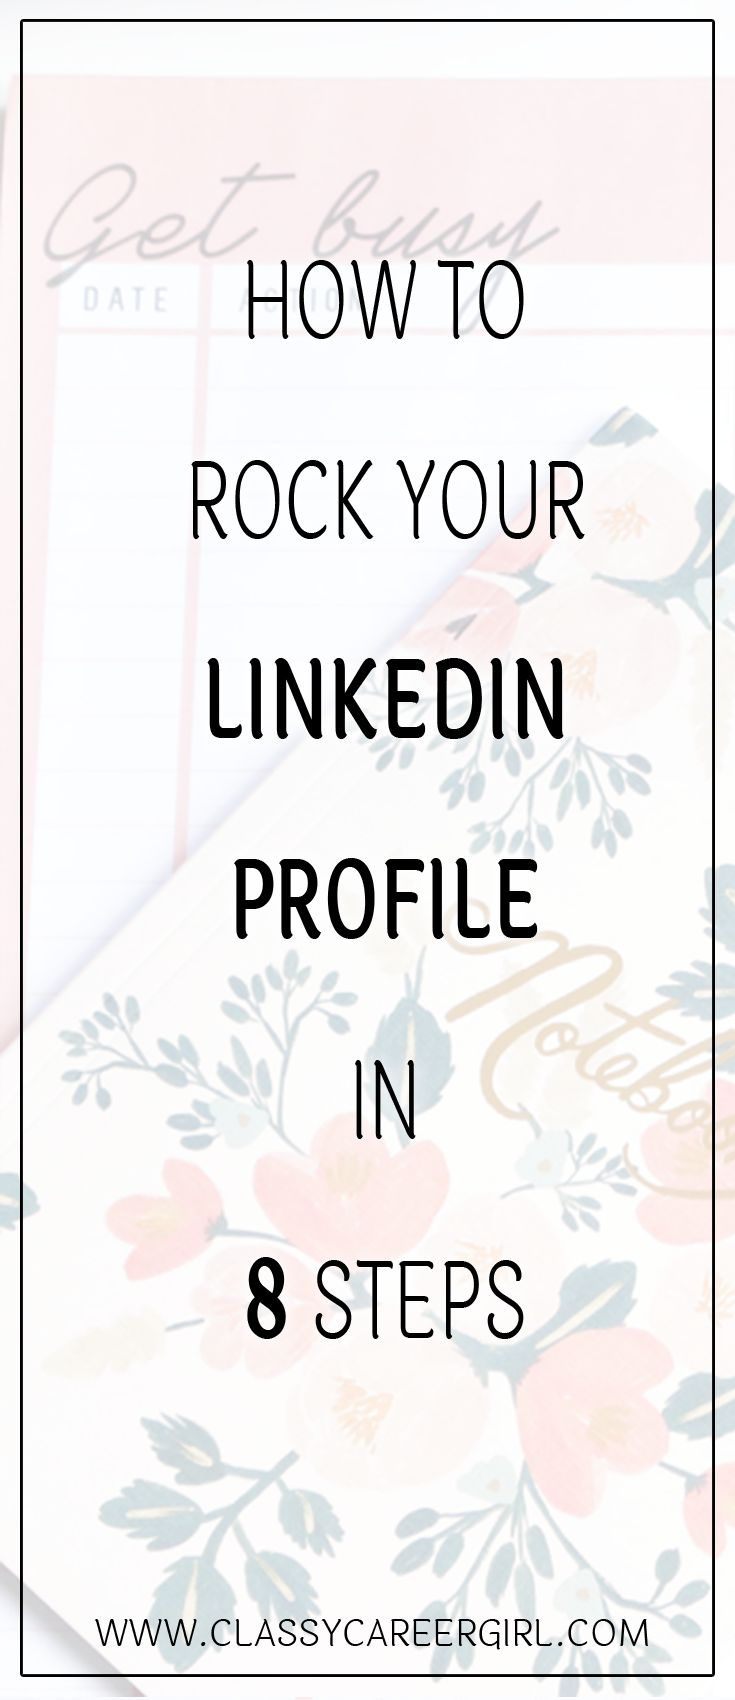 How to rock your linkedin profile in 8 steps social